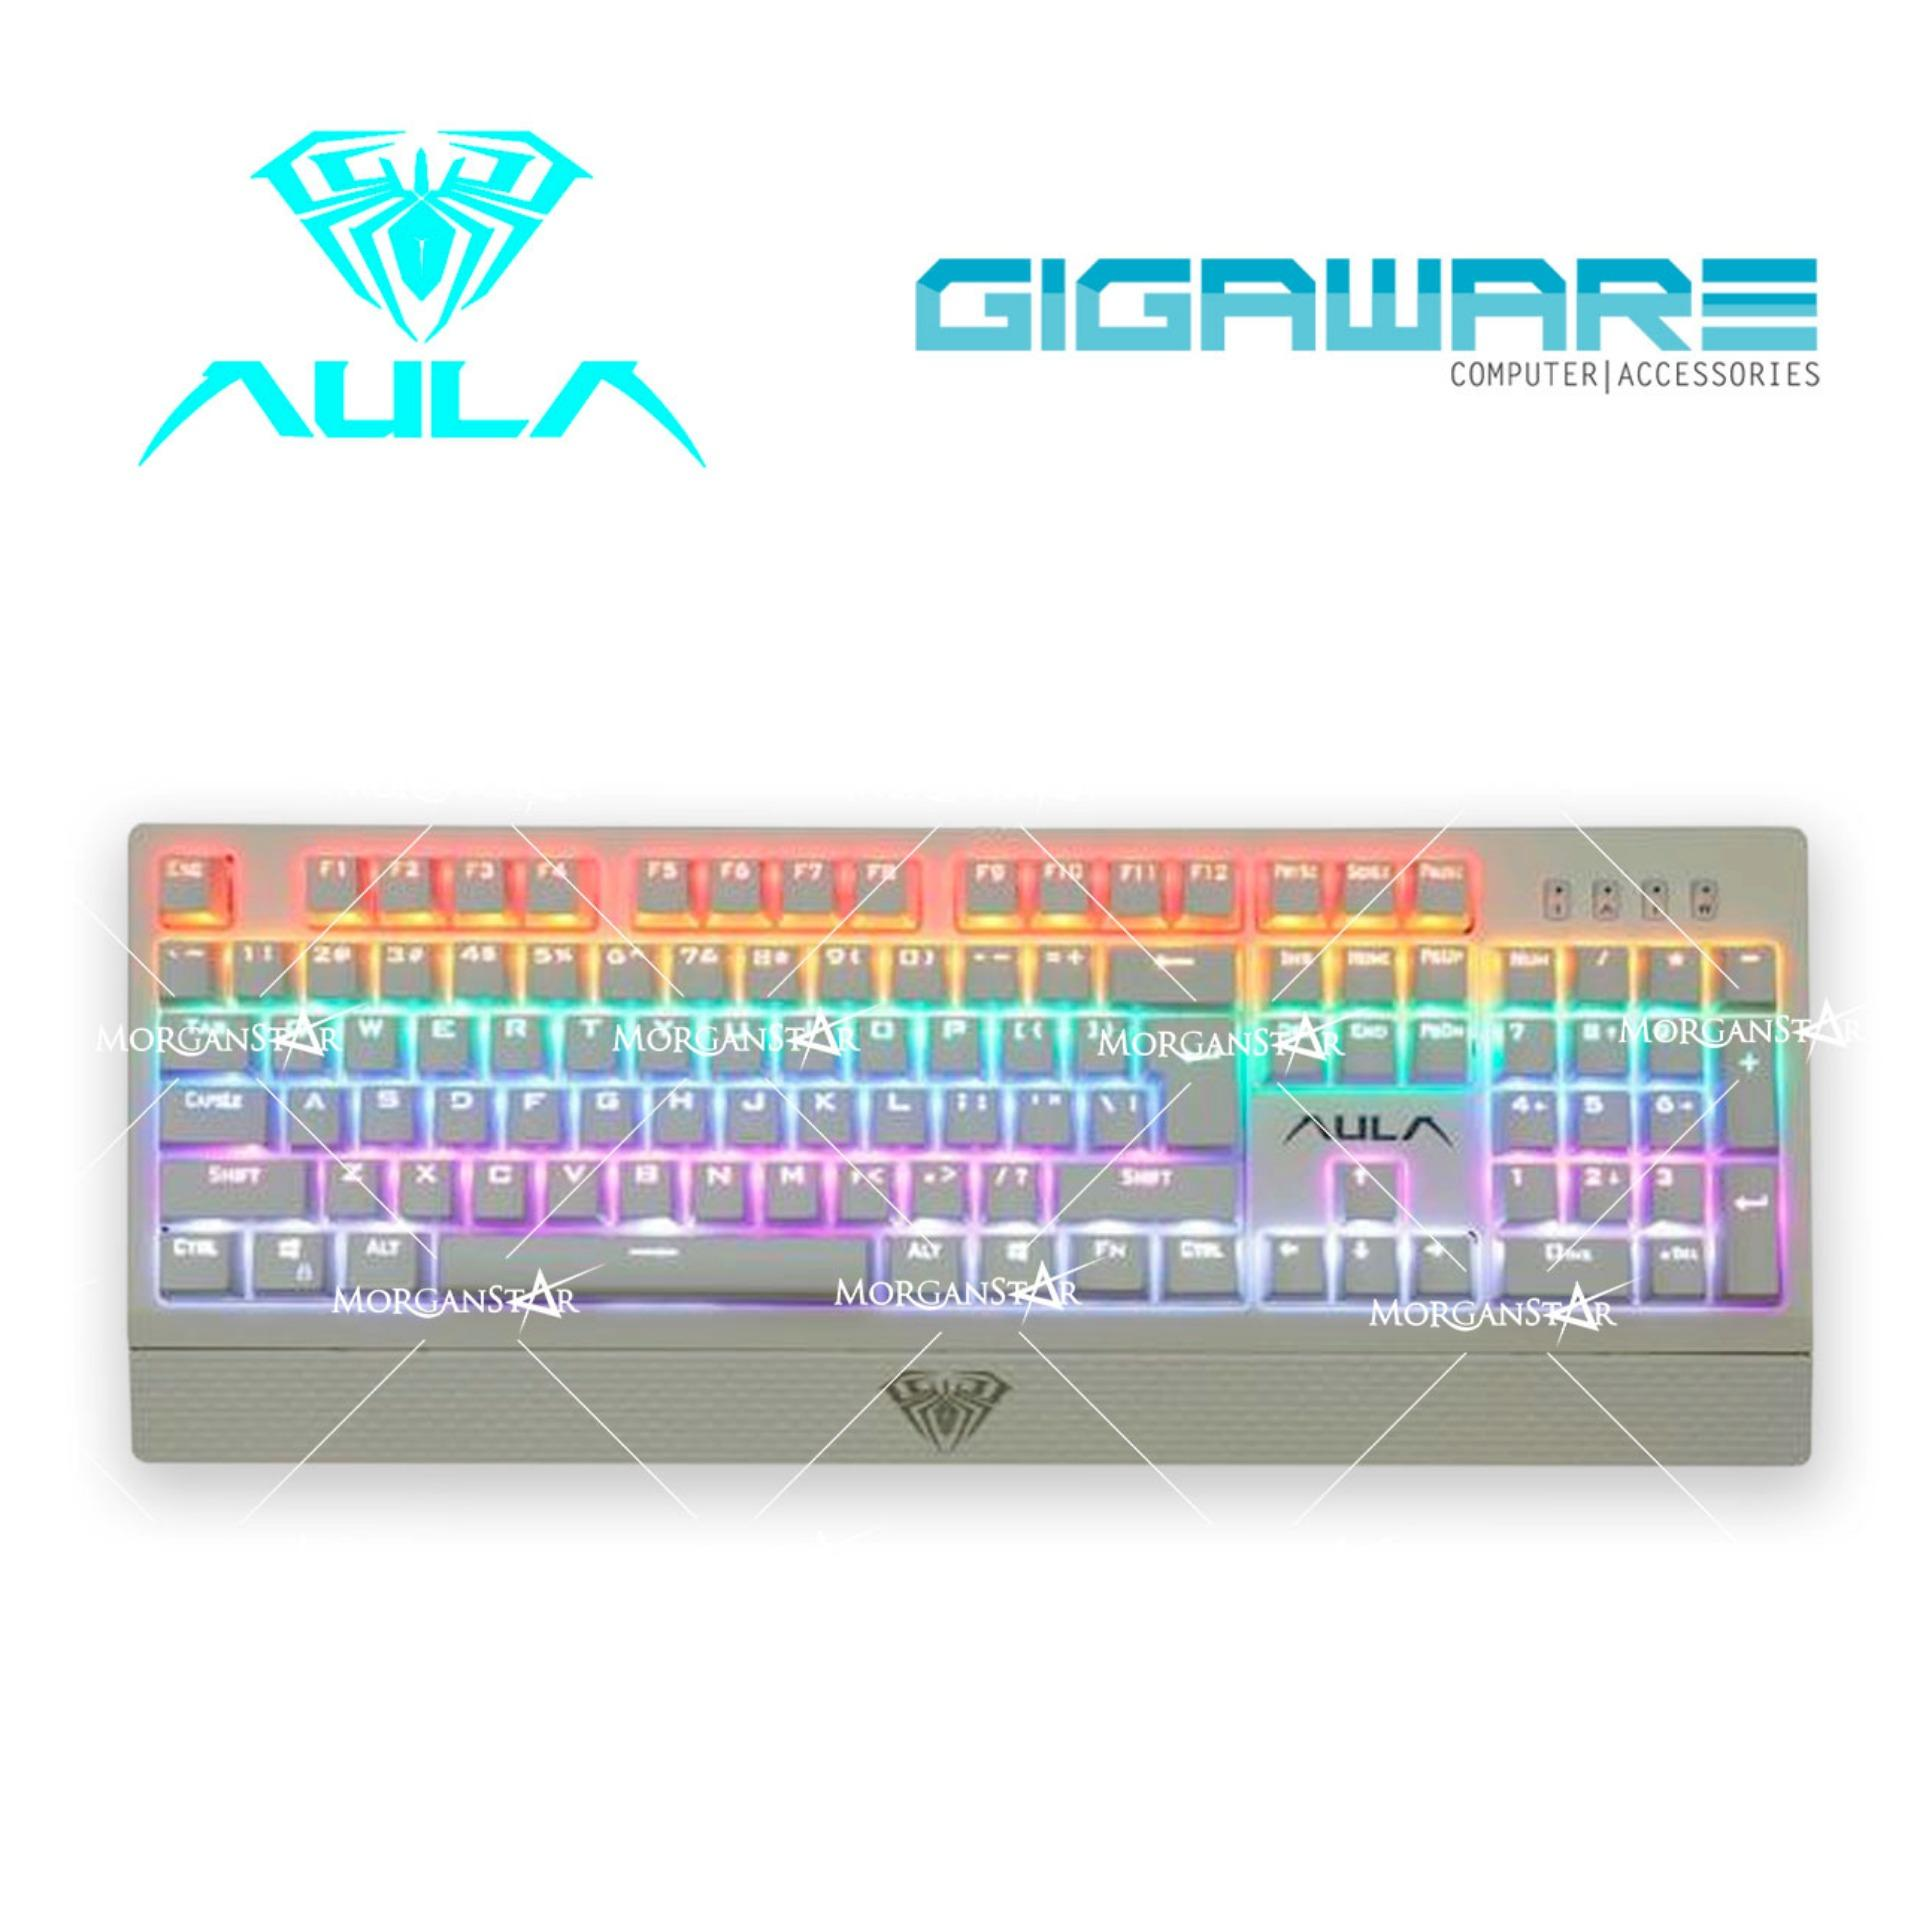 Aula Philippines Gaming Keyboards For Sale Prices Reviews Computer Keyboard Diagram Kids Official Si 890s Rainbow Led Wings Of Liberty Mechanical 104keys Multi